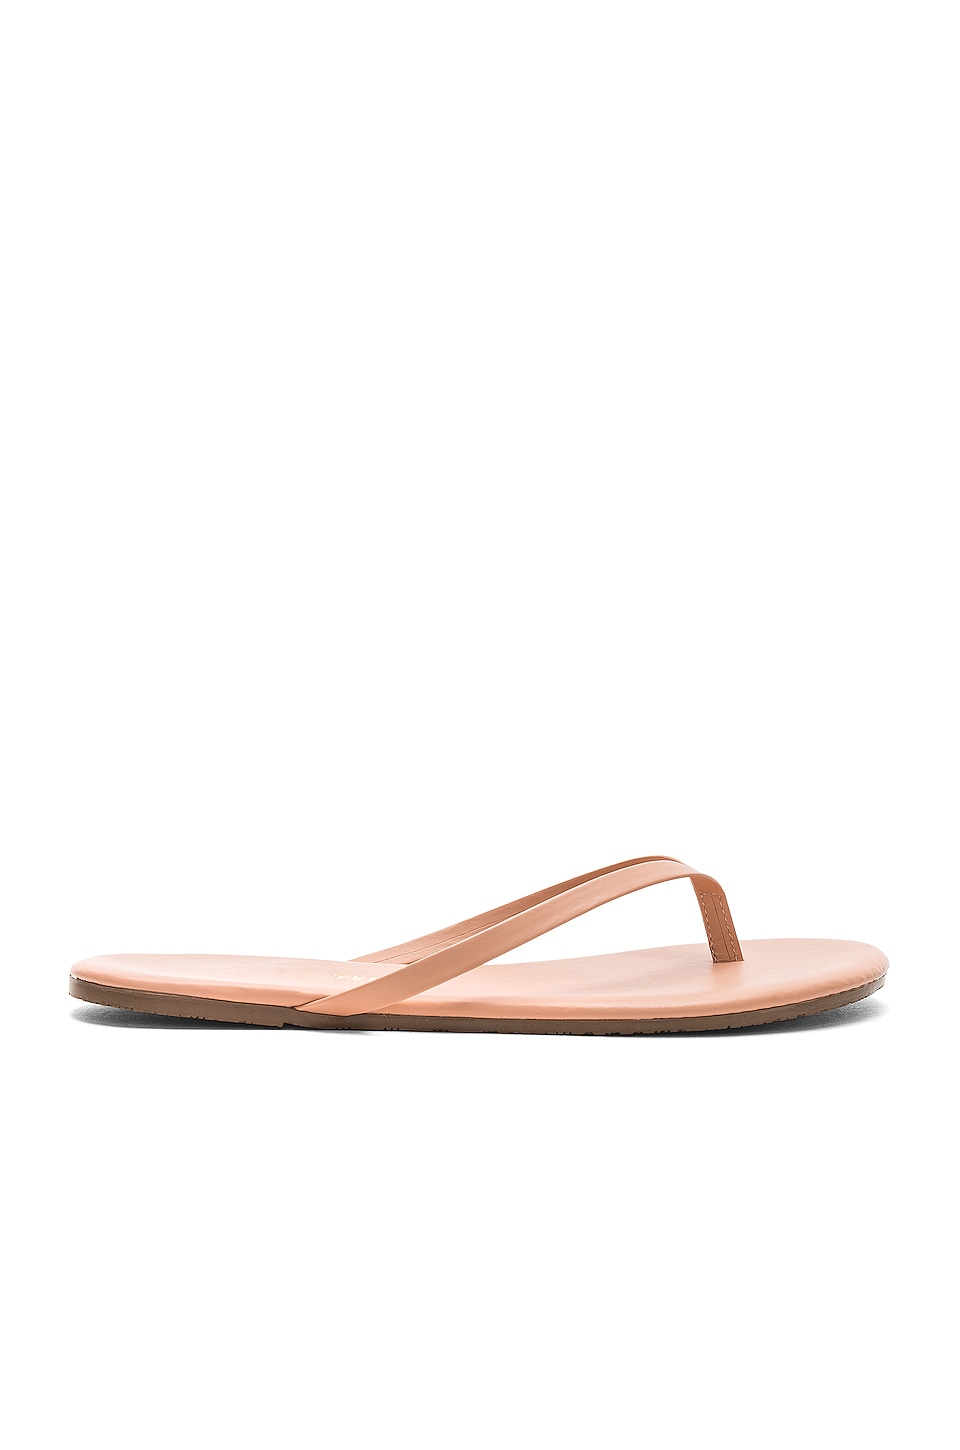 TKEES Foundations Flip Flops in Nude Beach